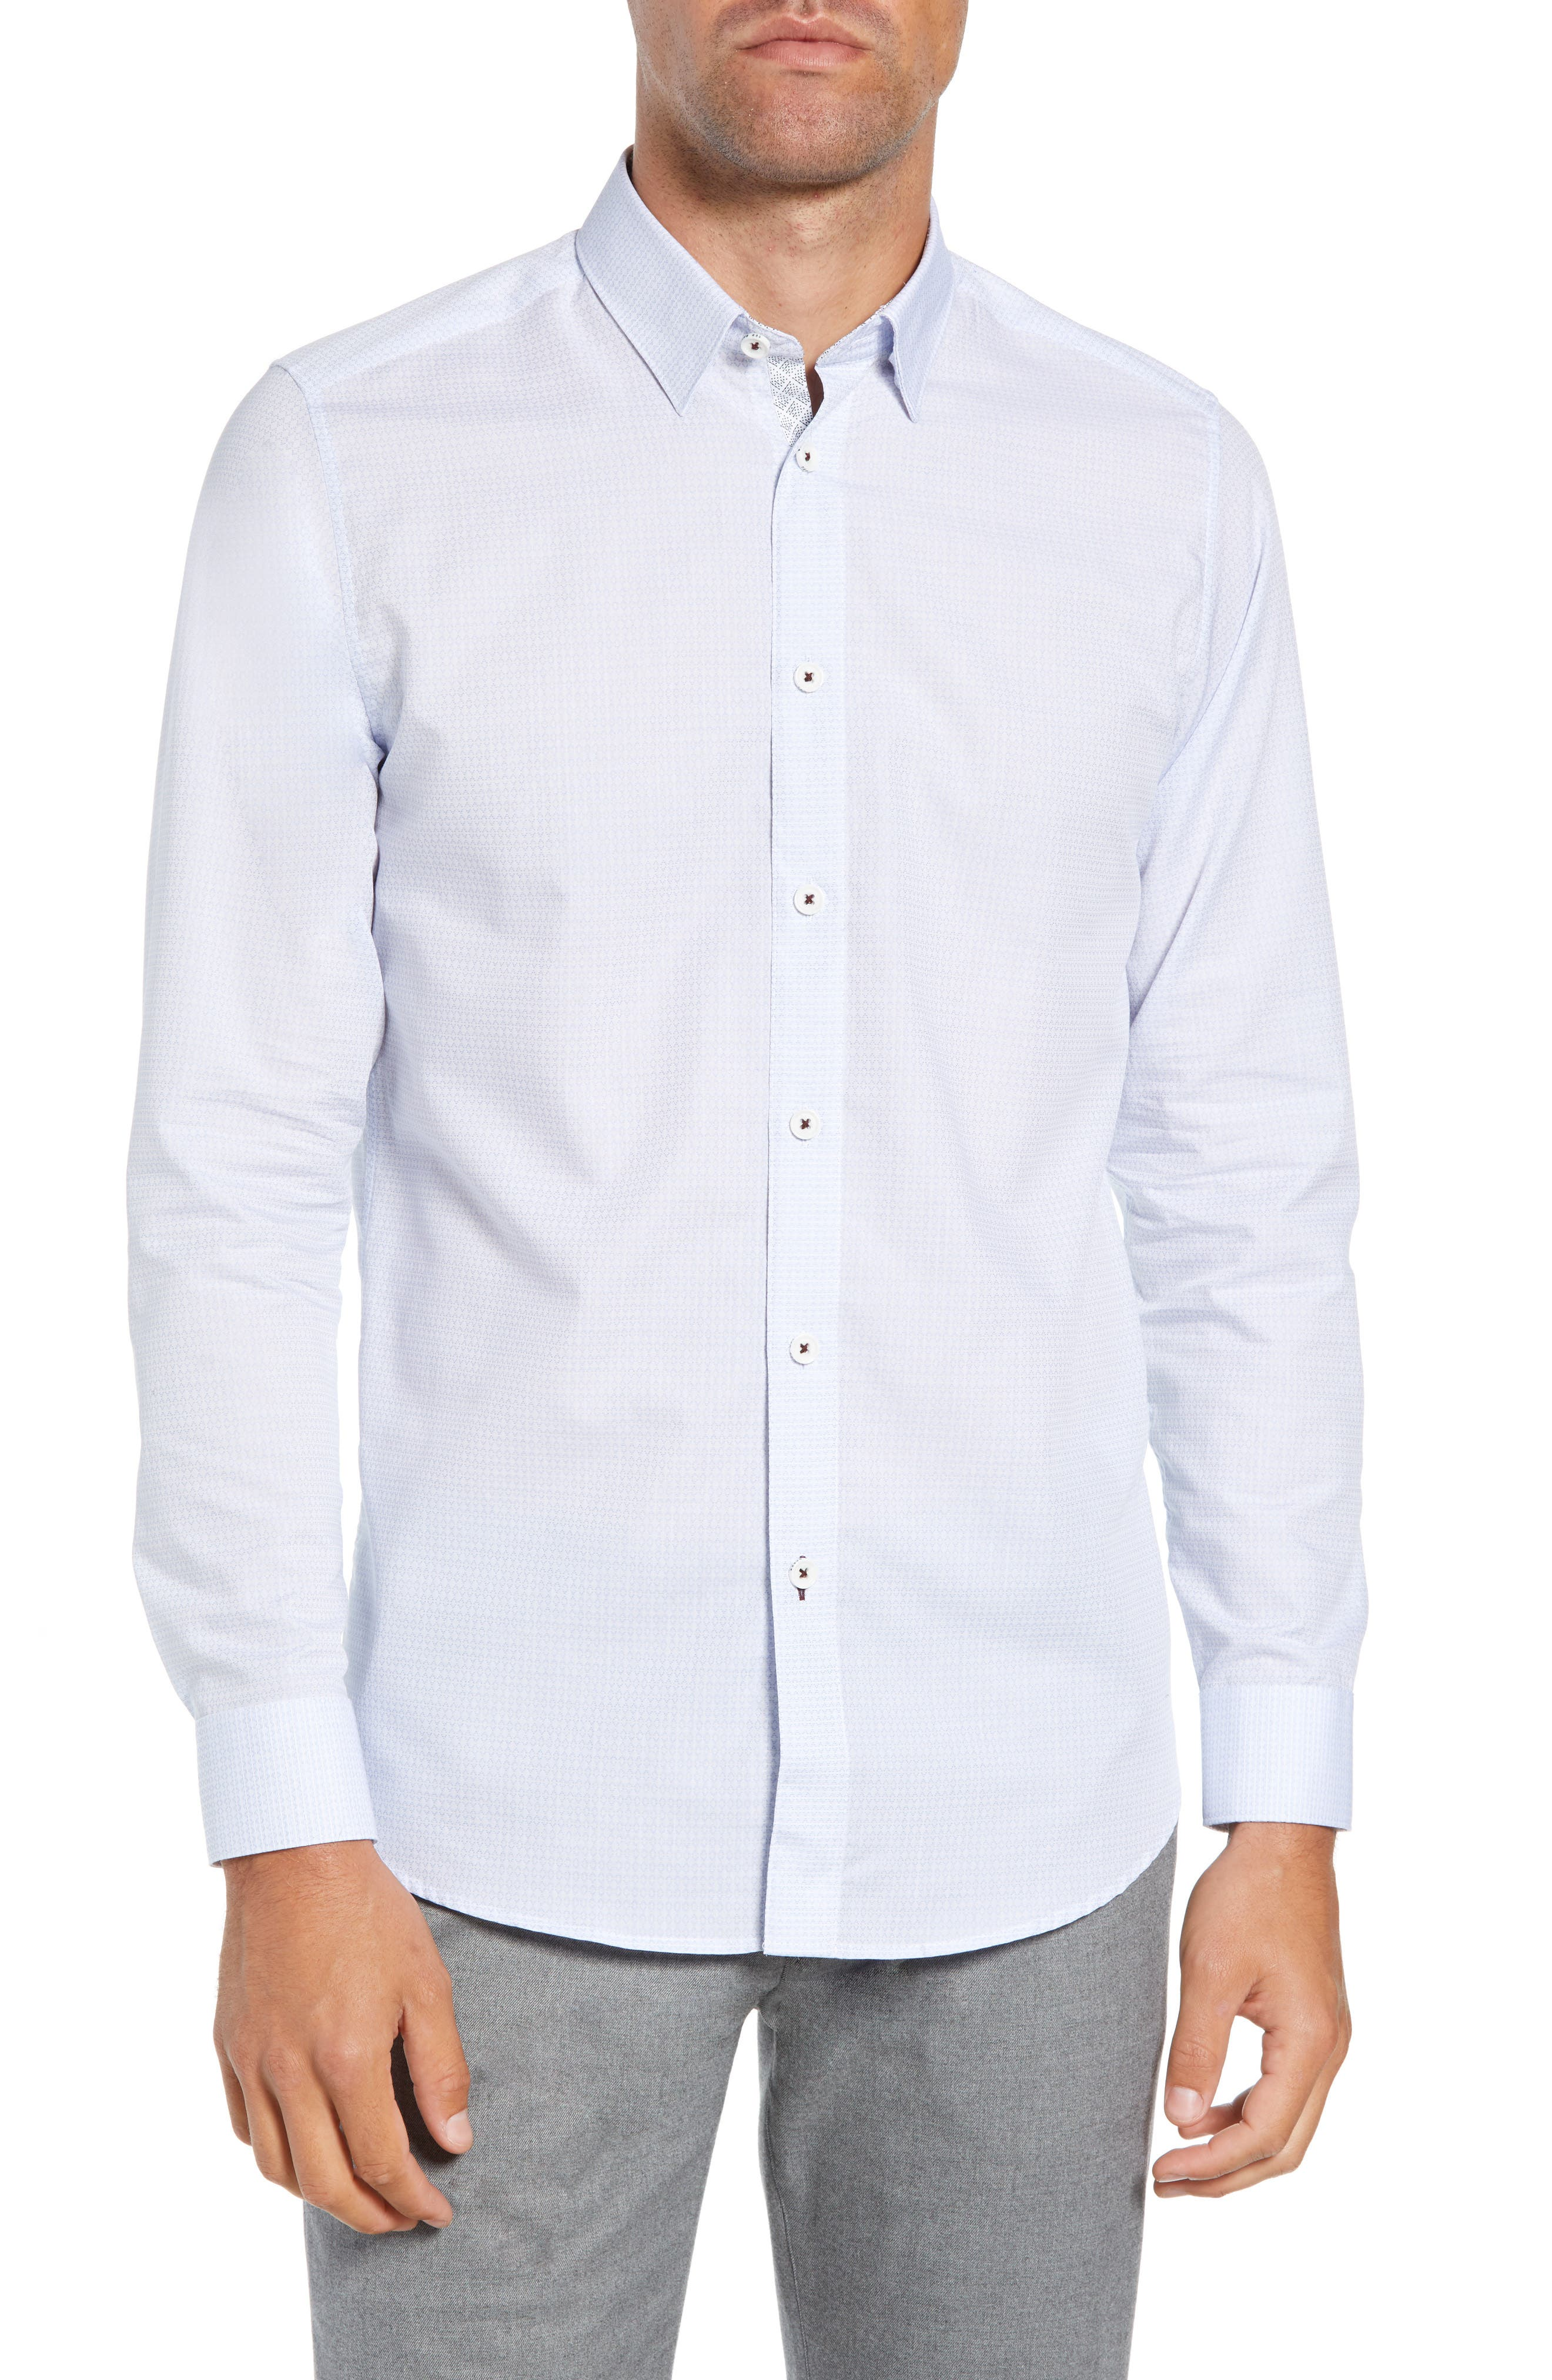 Myll Slim Fit Jacquard Sport Shirt,                         Main,                         color, WHITE